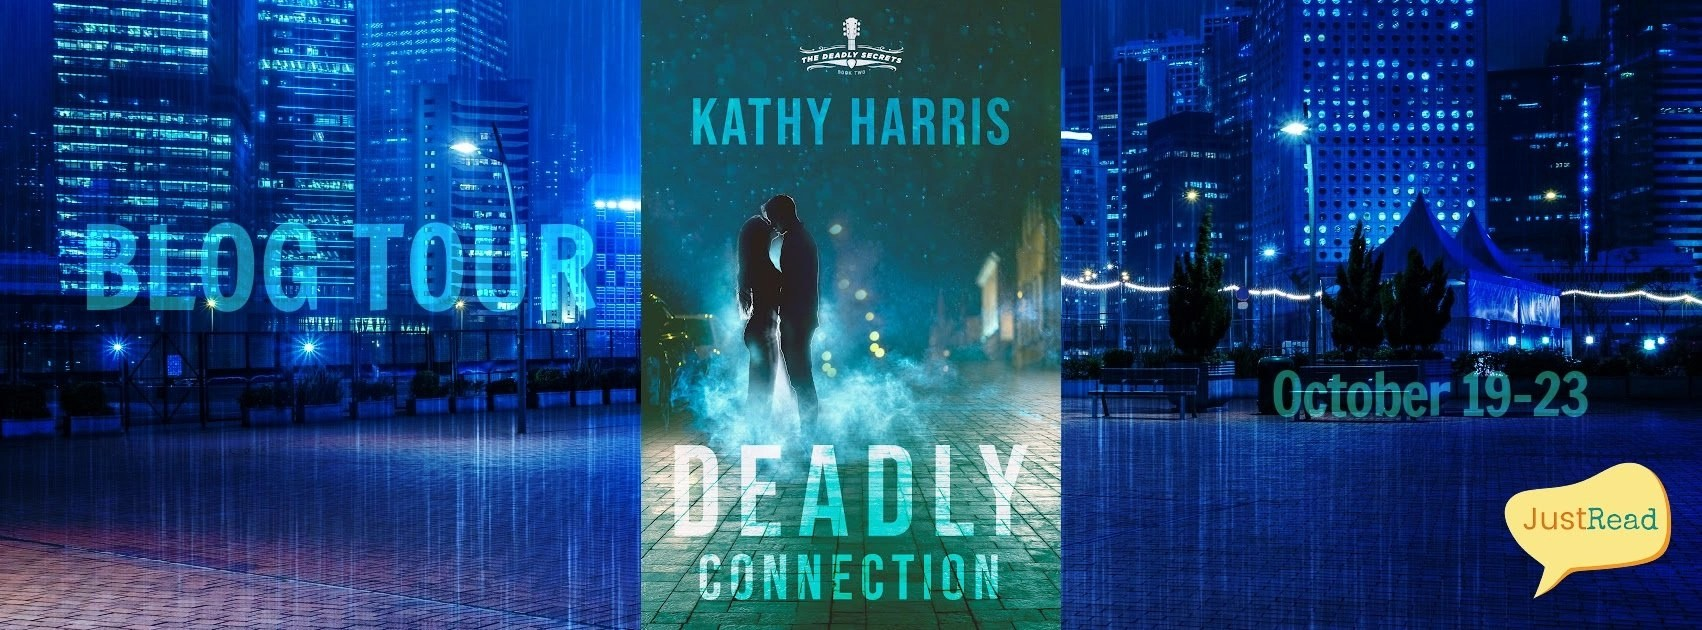 Welcome to the Deadly Connection Blog Tour & Giveaway!